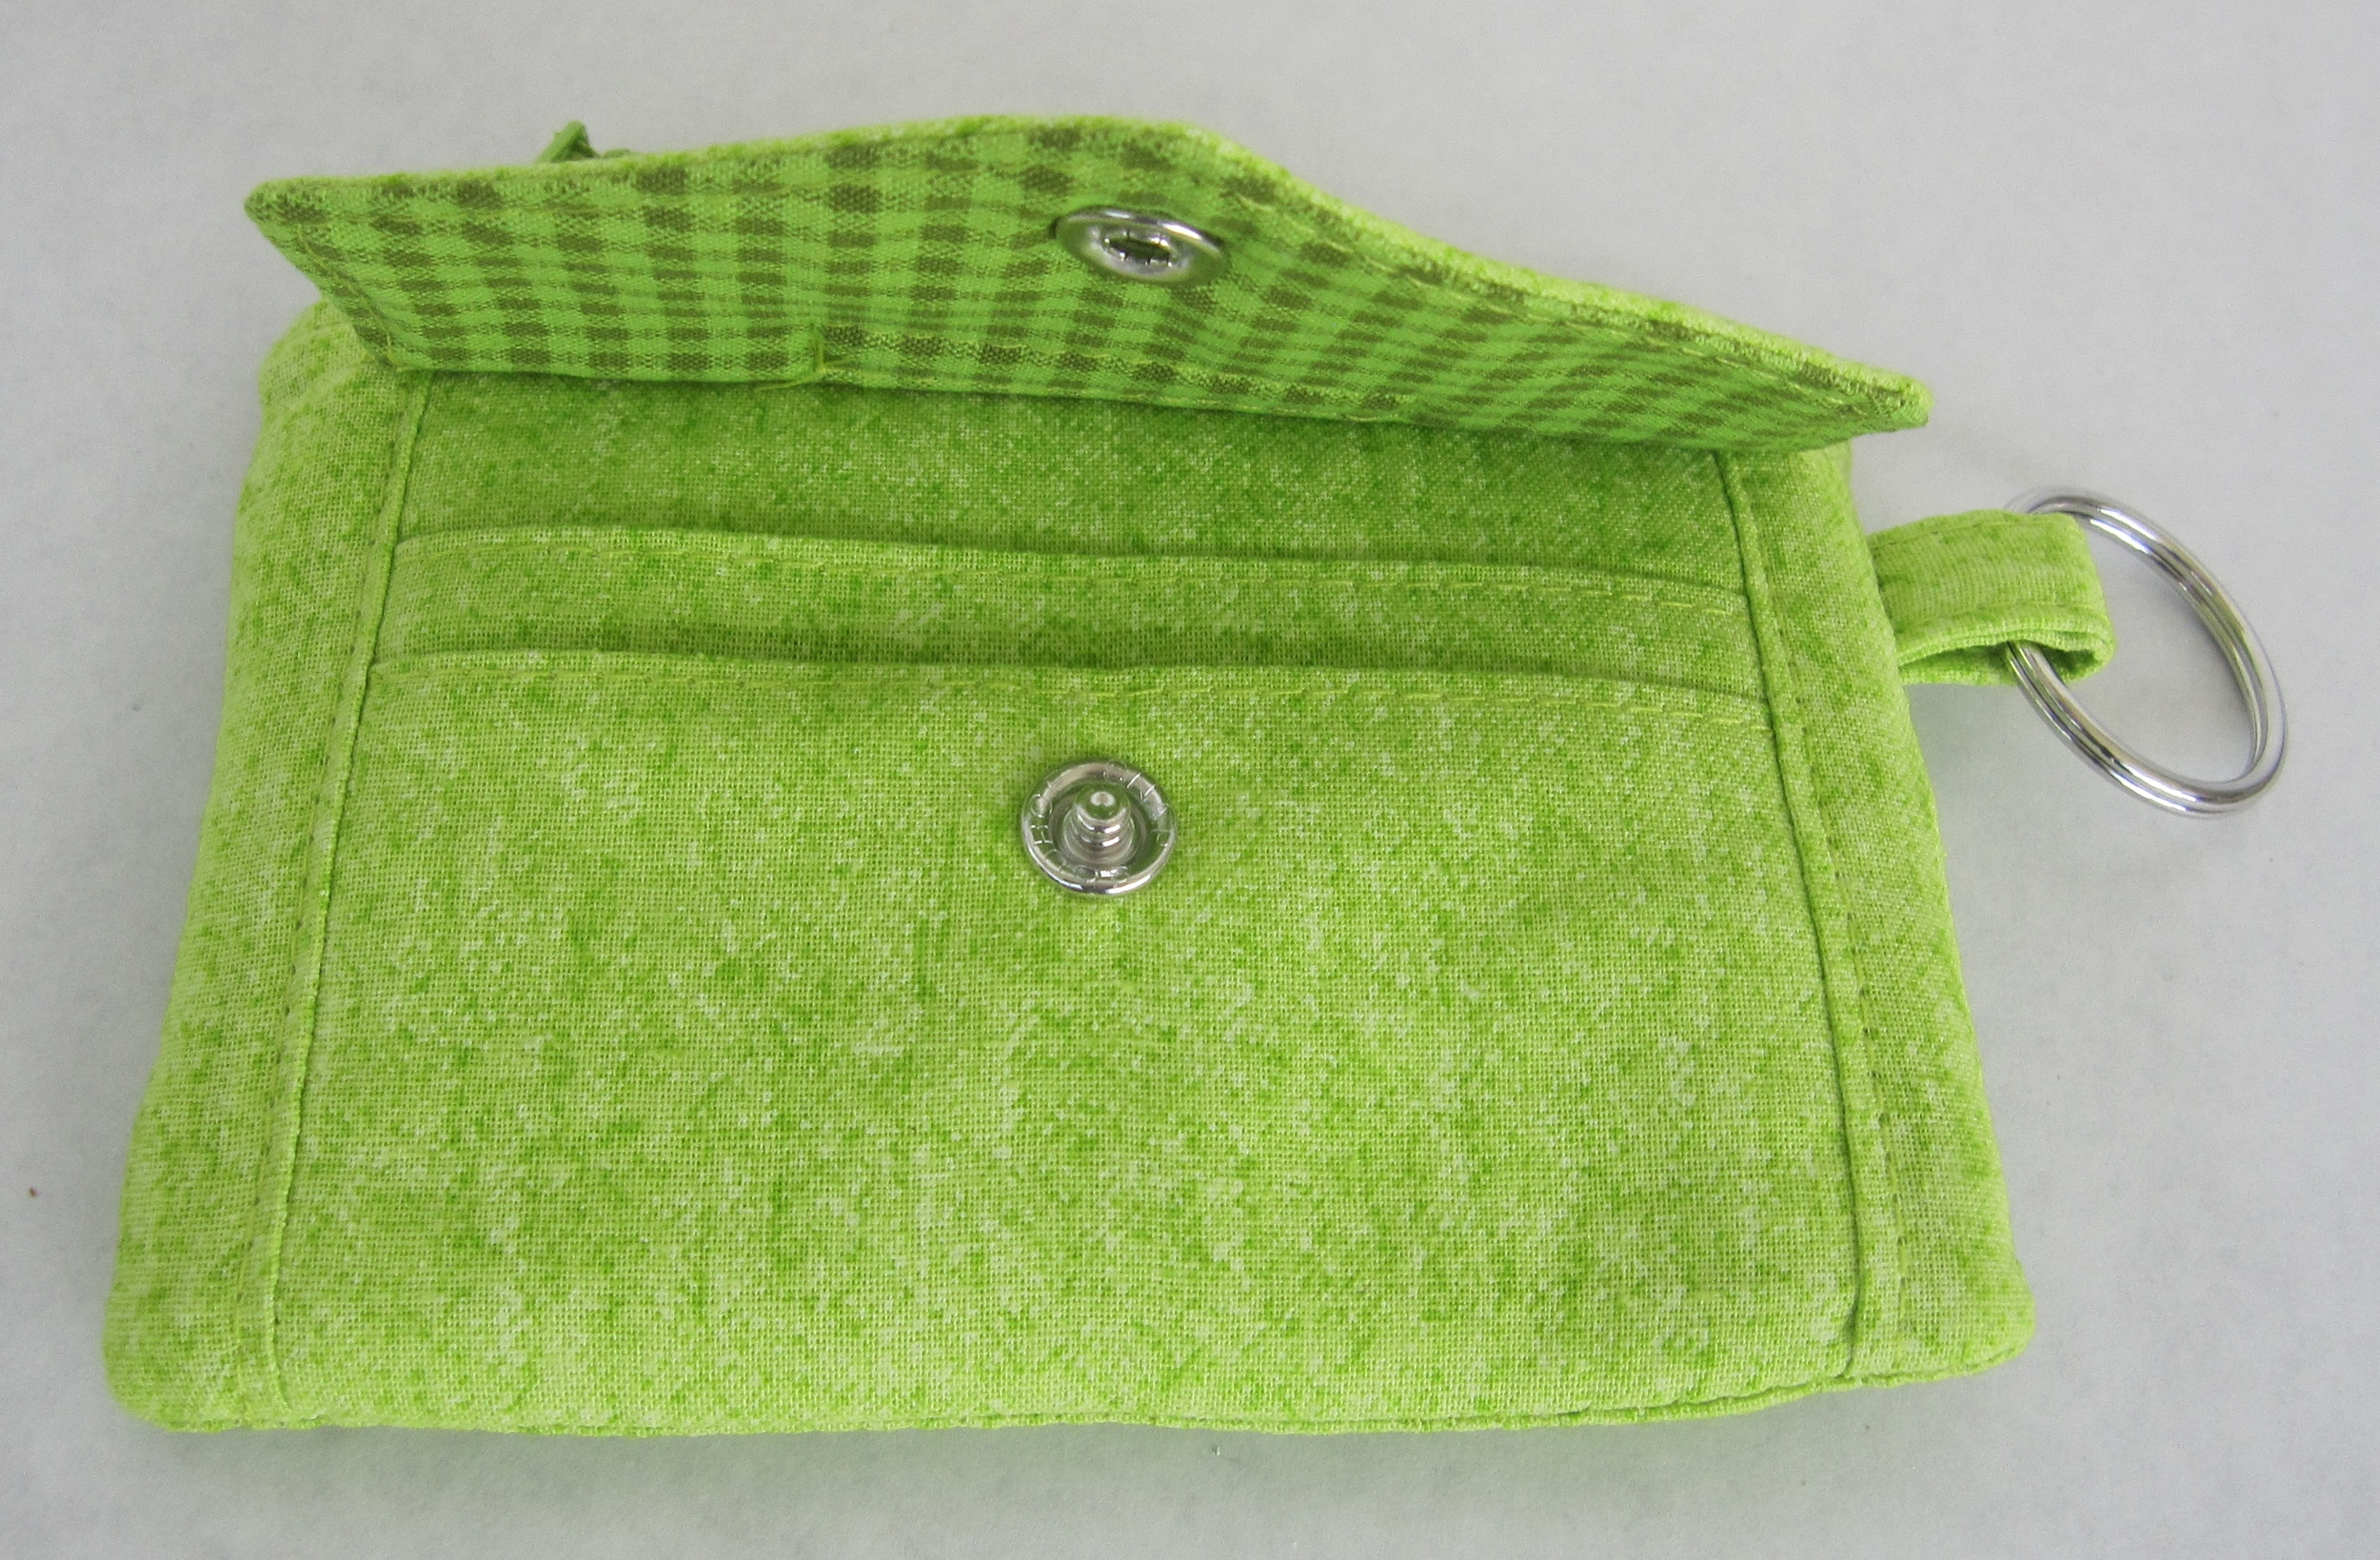 I love how the underside of the envelope flap matches the lining of the zipper pocket in the next picture!